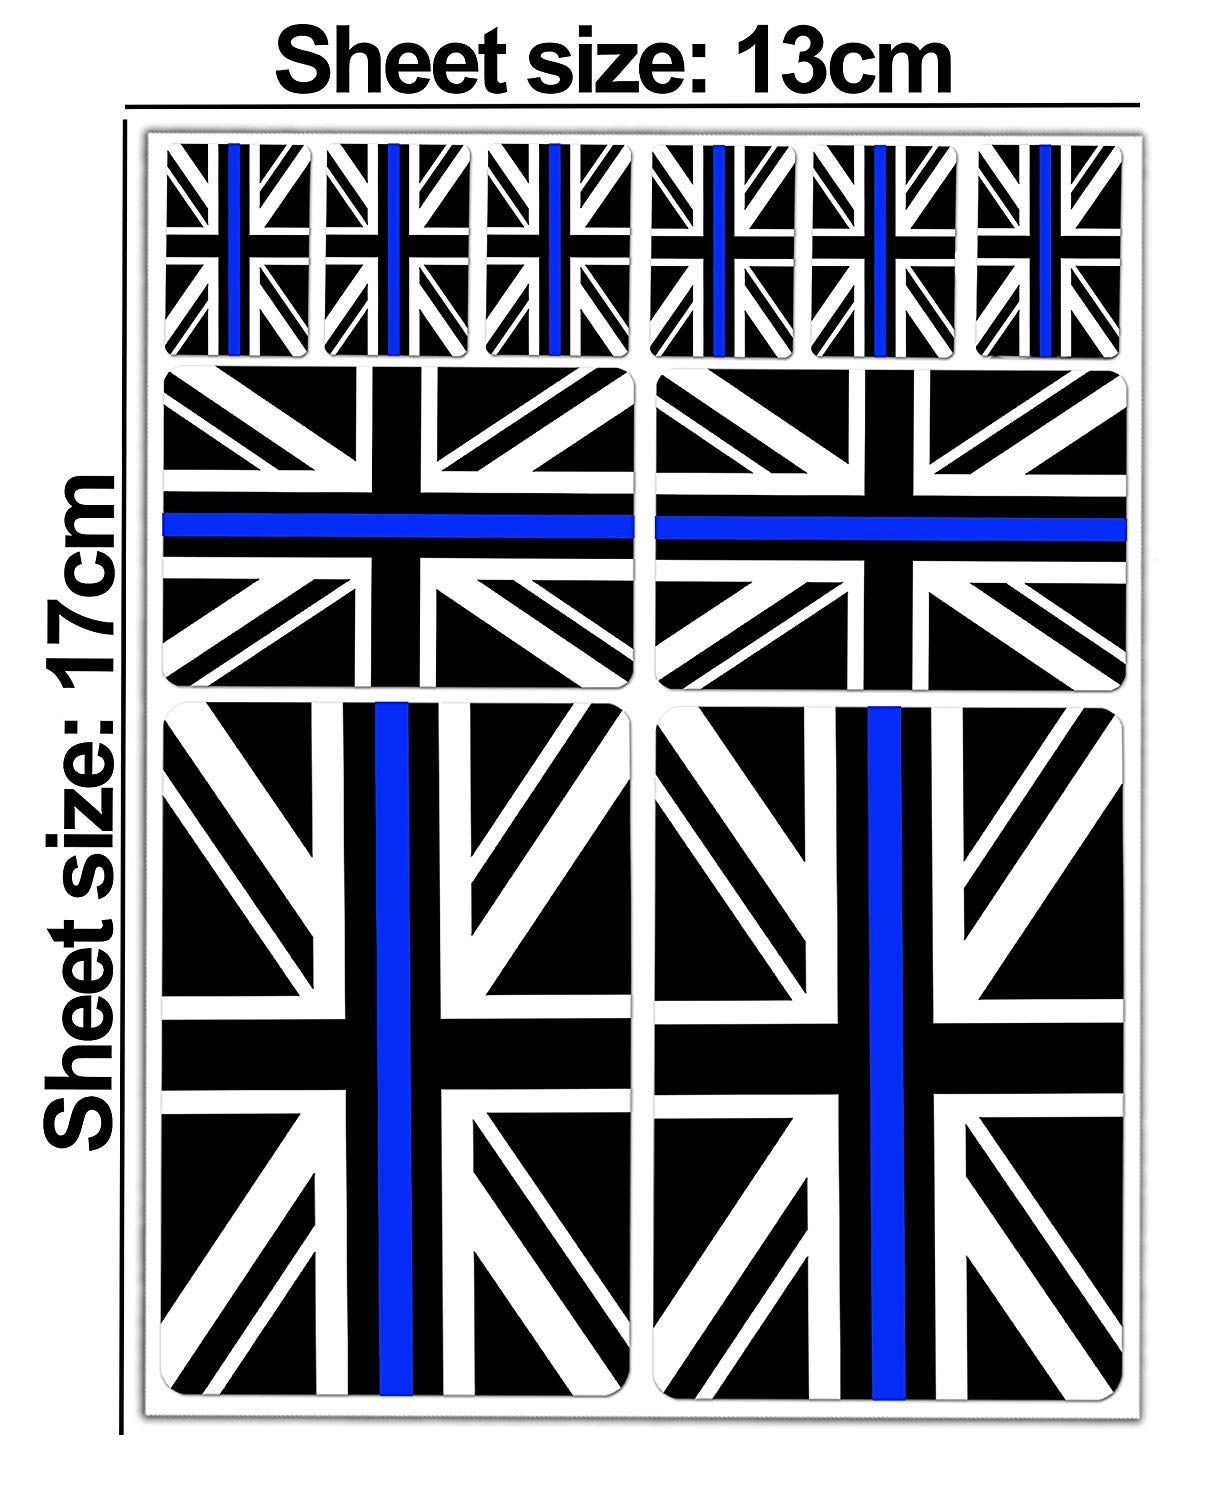 Set of 10 x Vinyl Stickers Decals UK National Thin Blue Line United Kingdom Union Jack Stealthy Police Flag Car Motorcycle Helmet D 40